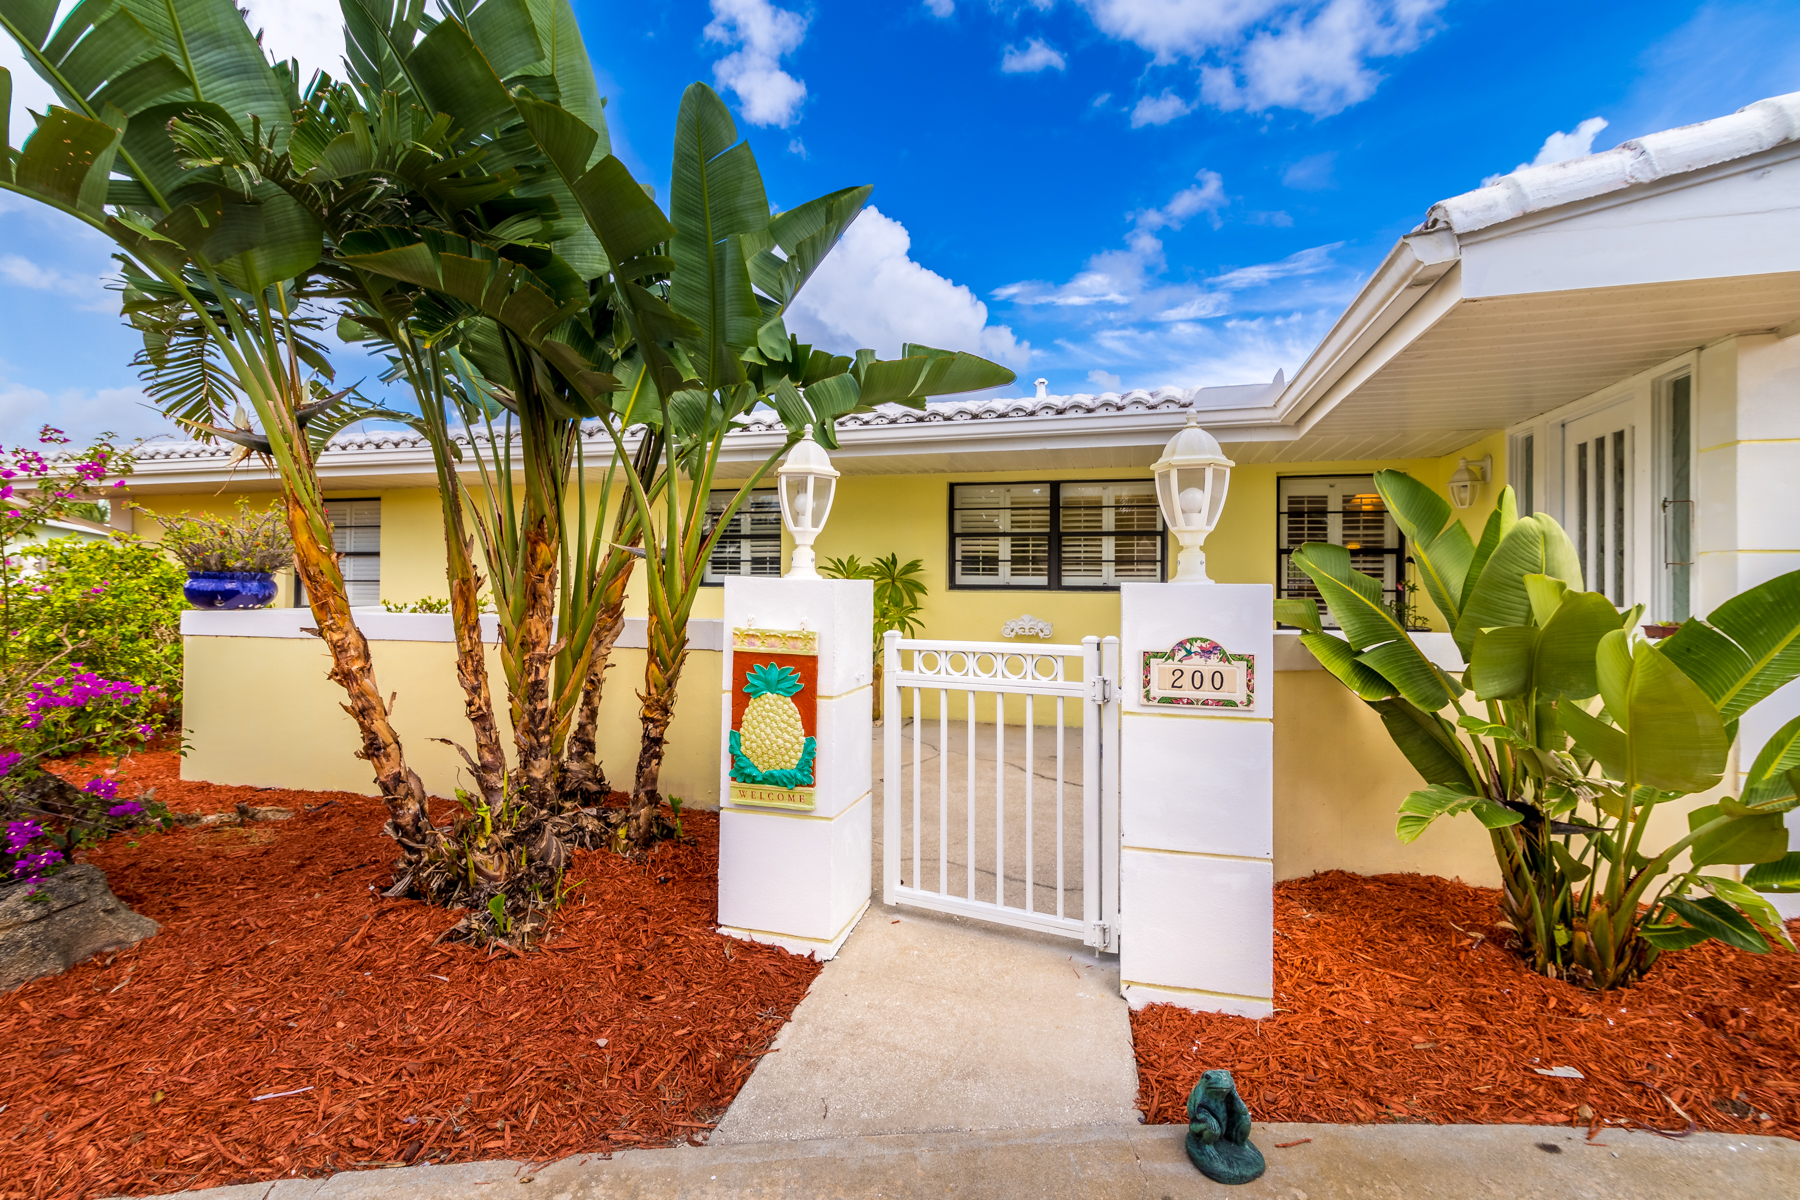 Property for Sale at Pool Home on Nearly 1/2 Acre in Indialantic by the Sea! 200 Deland Avenue Indialantic, Florida 32903 United States